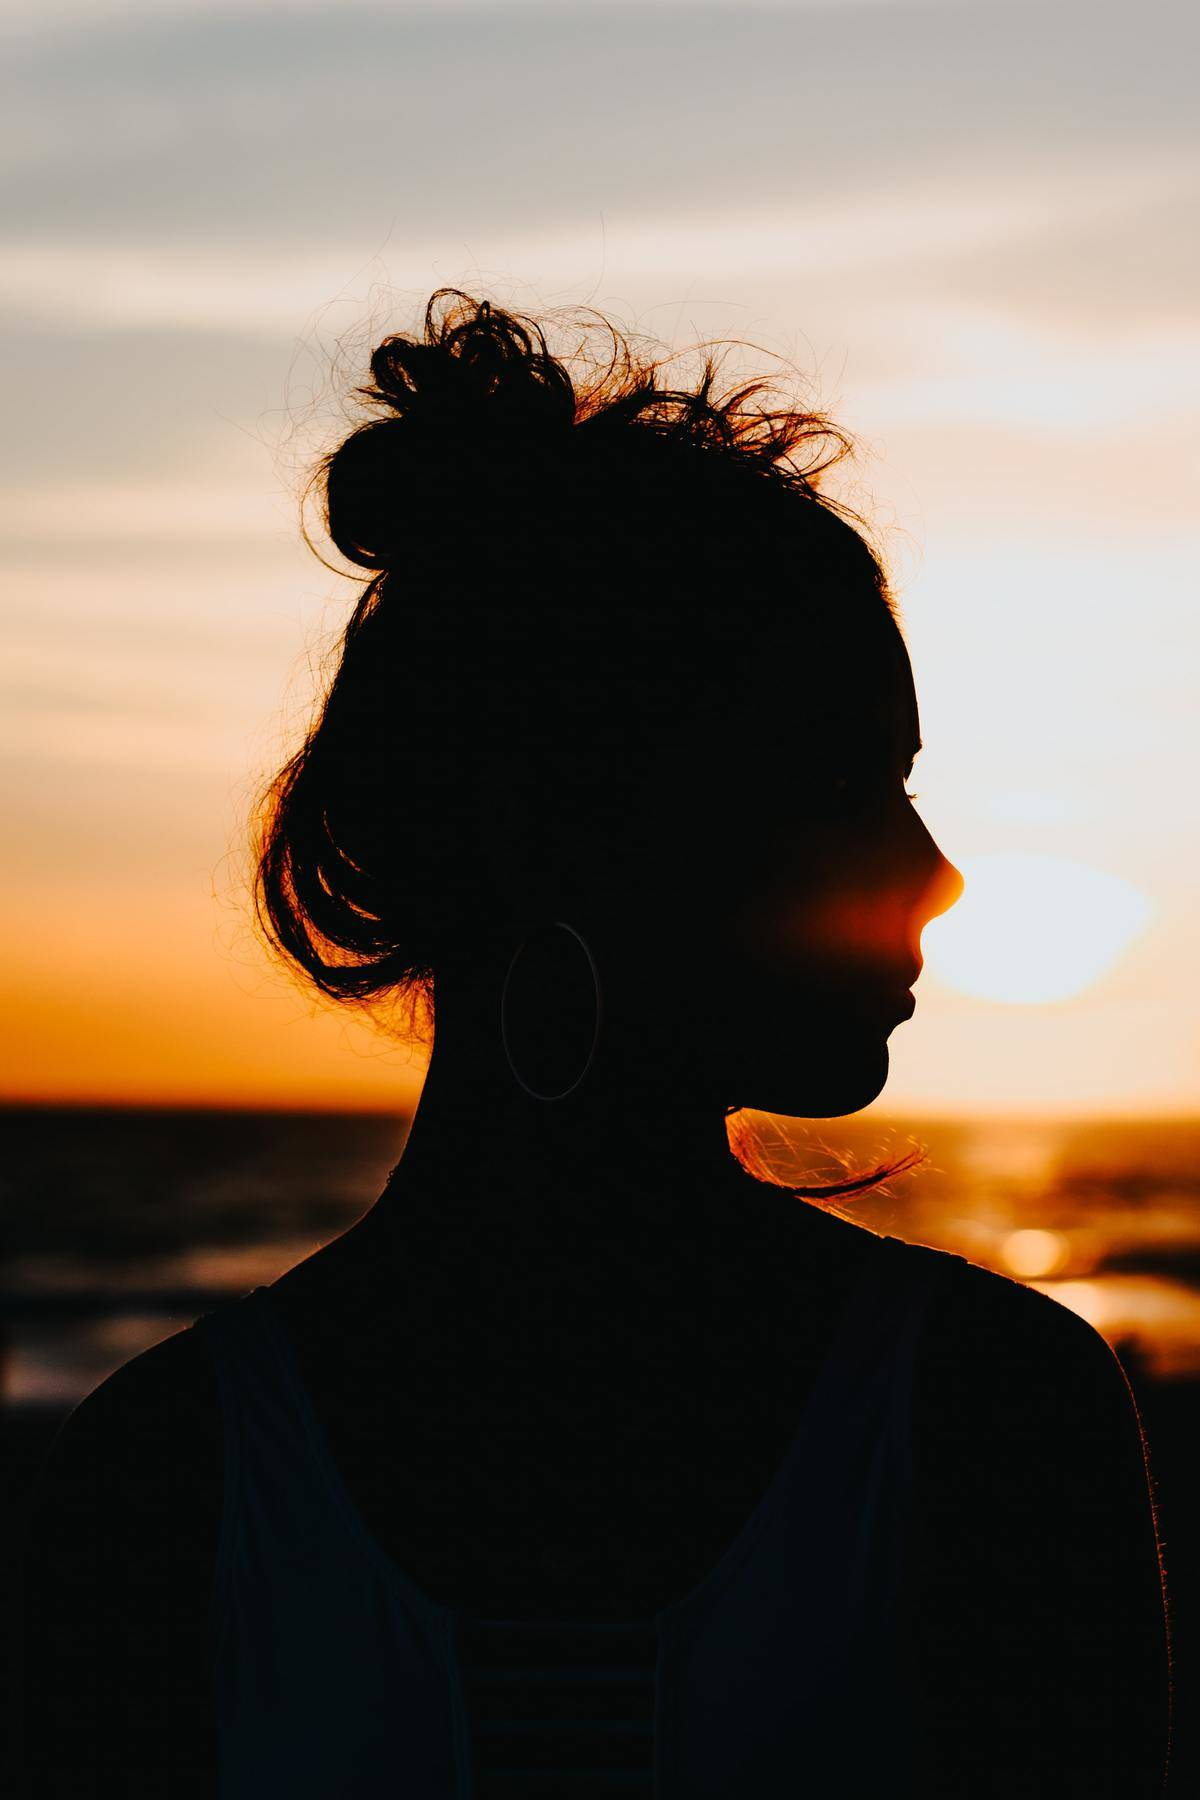 silhouette of woman with hair in messy bun against sunset